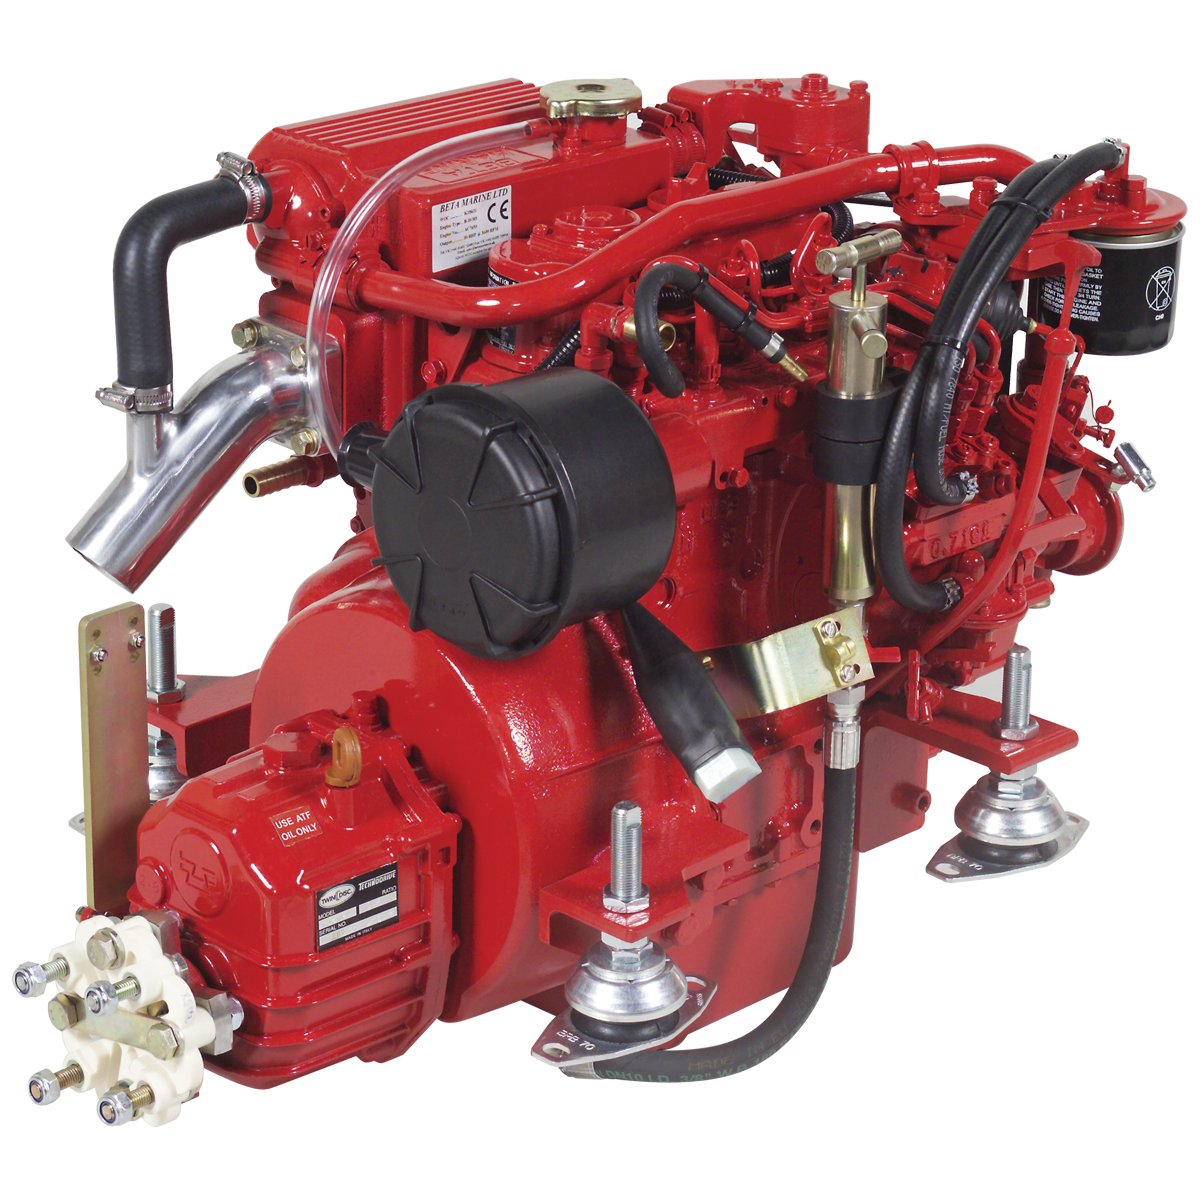 Beta Marine USA - marine diesel propulsion engines - Beta 20 heat exchanger engine